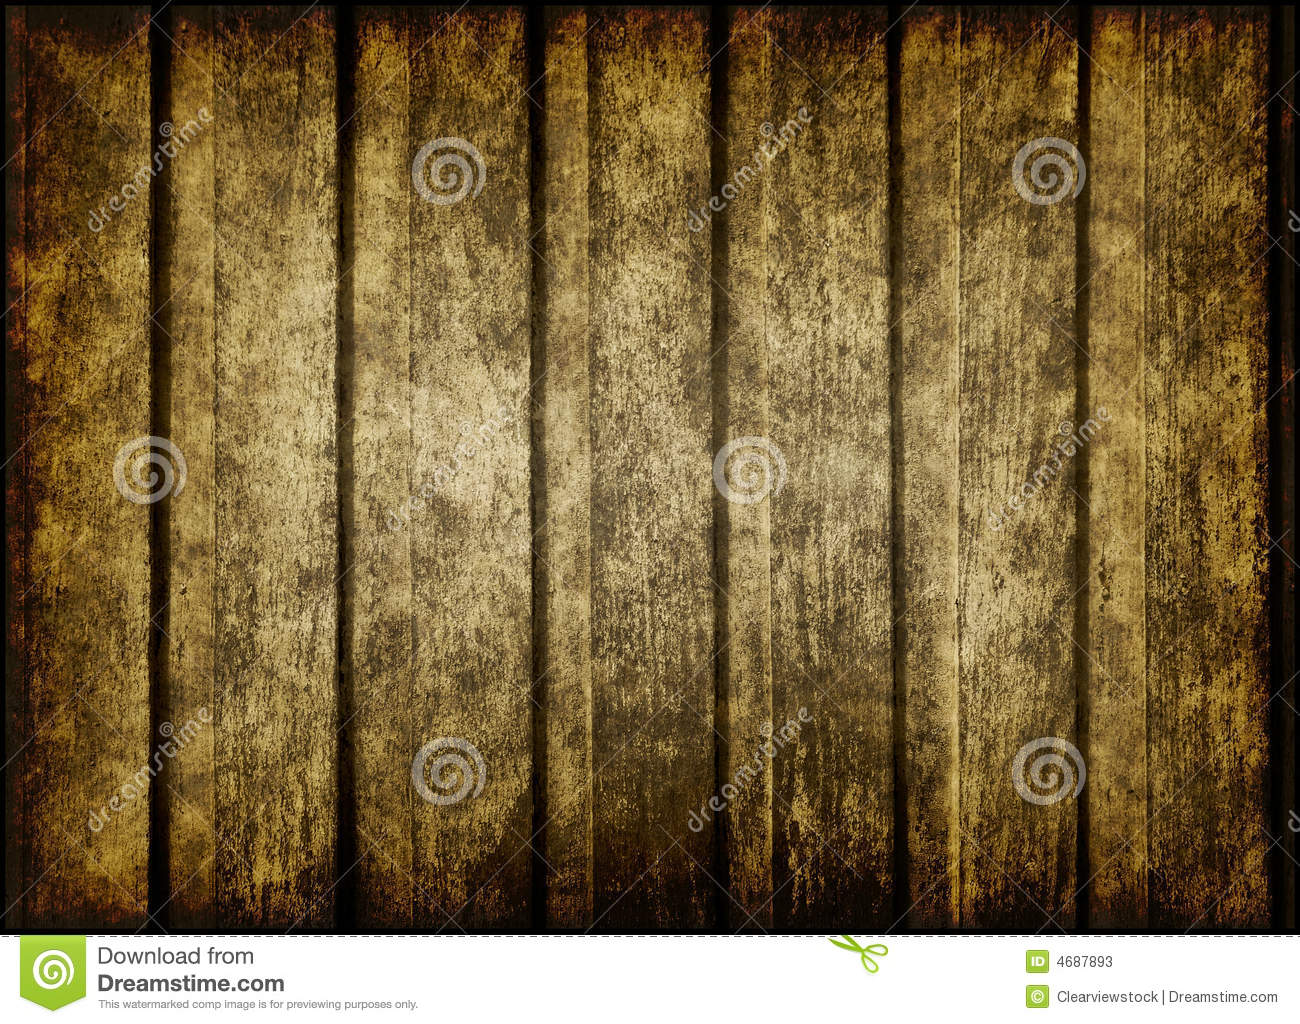 grungy wood background textures - photo #33